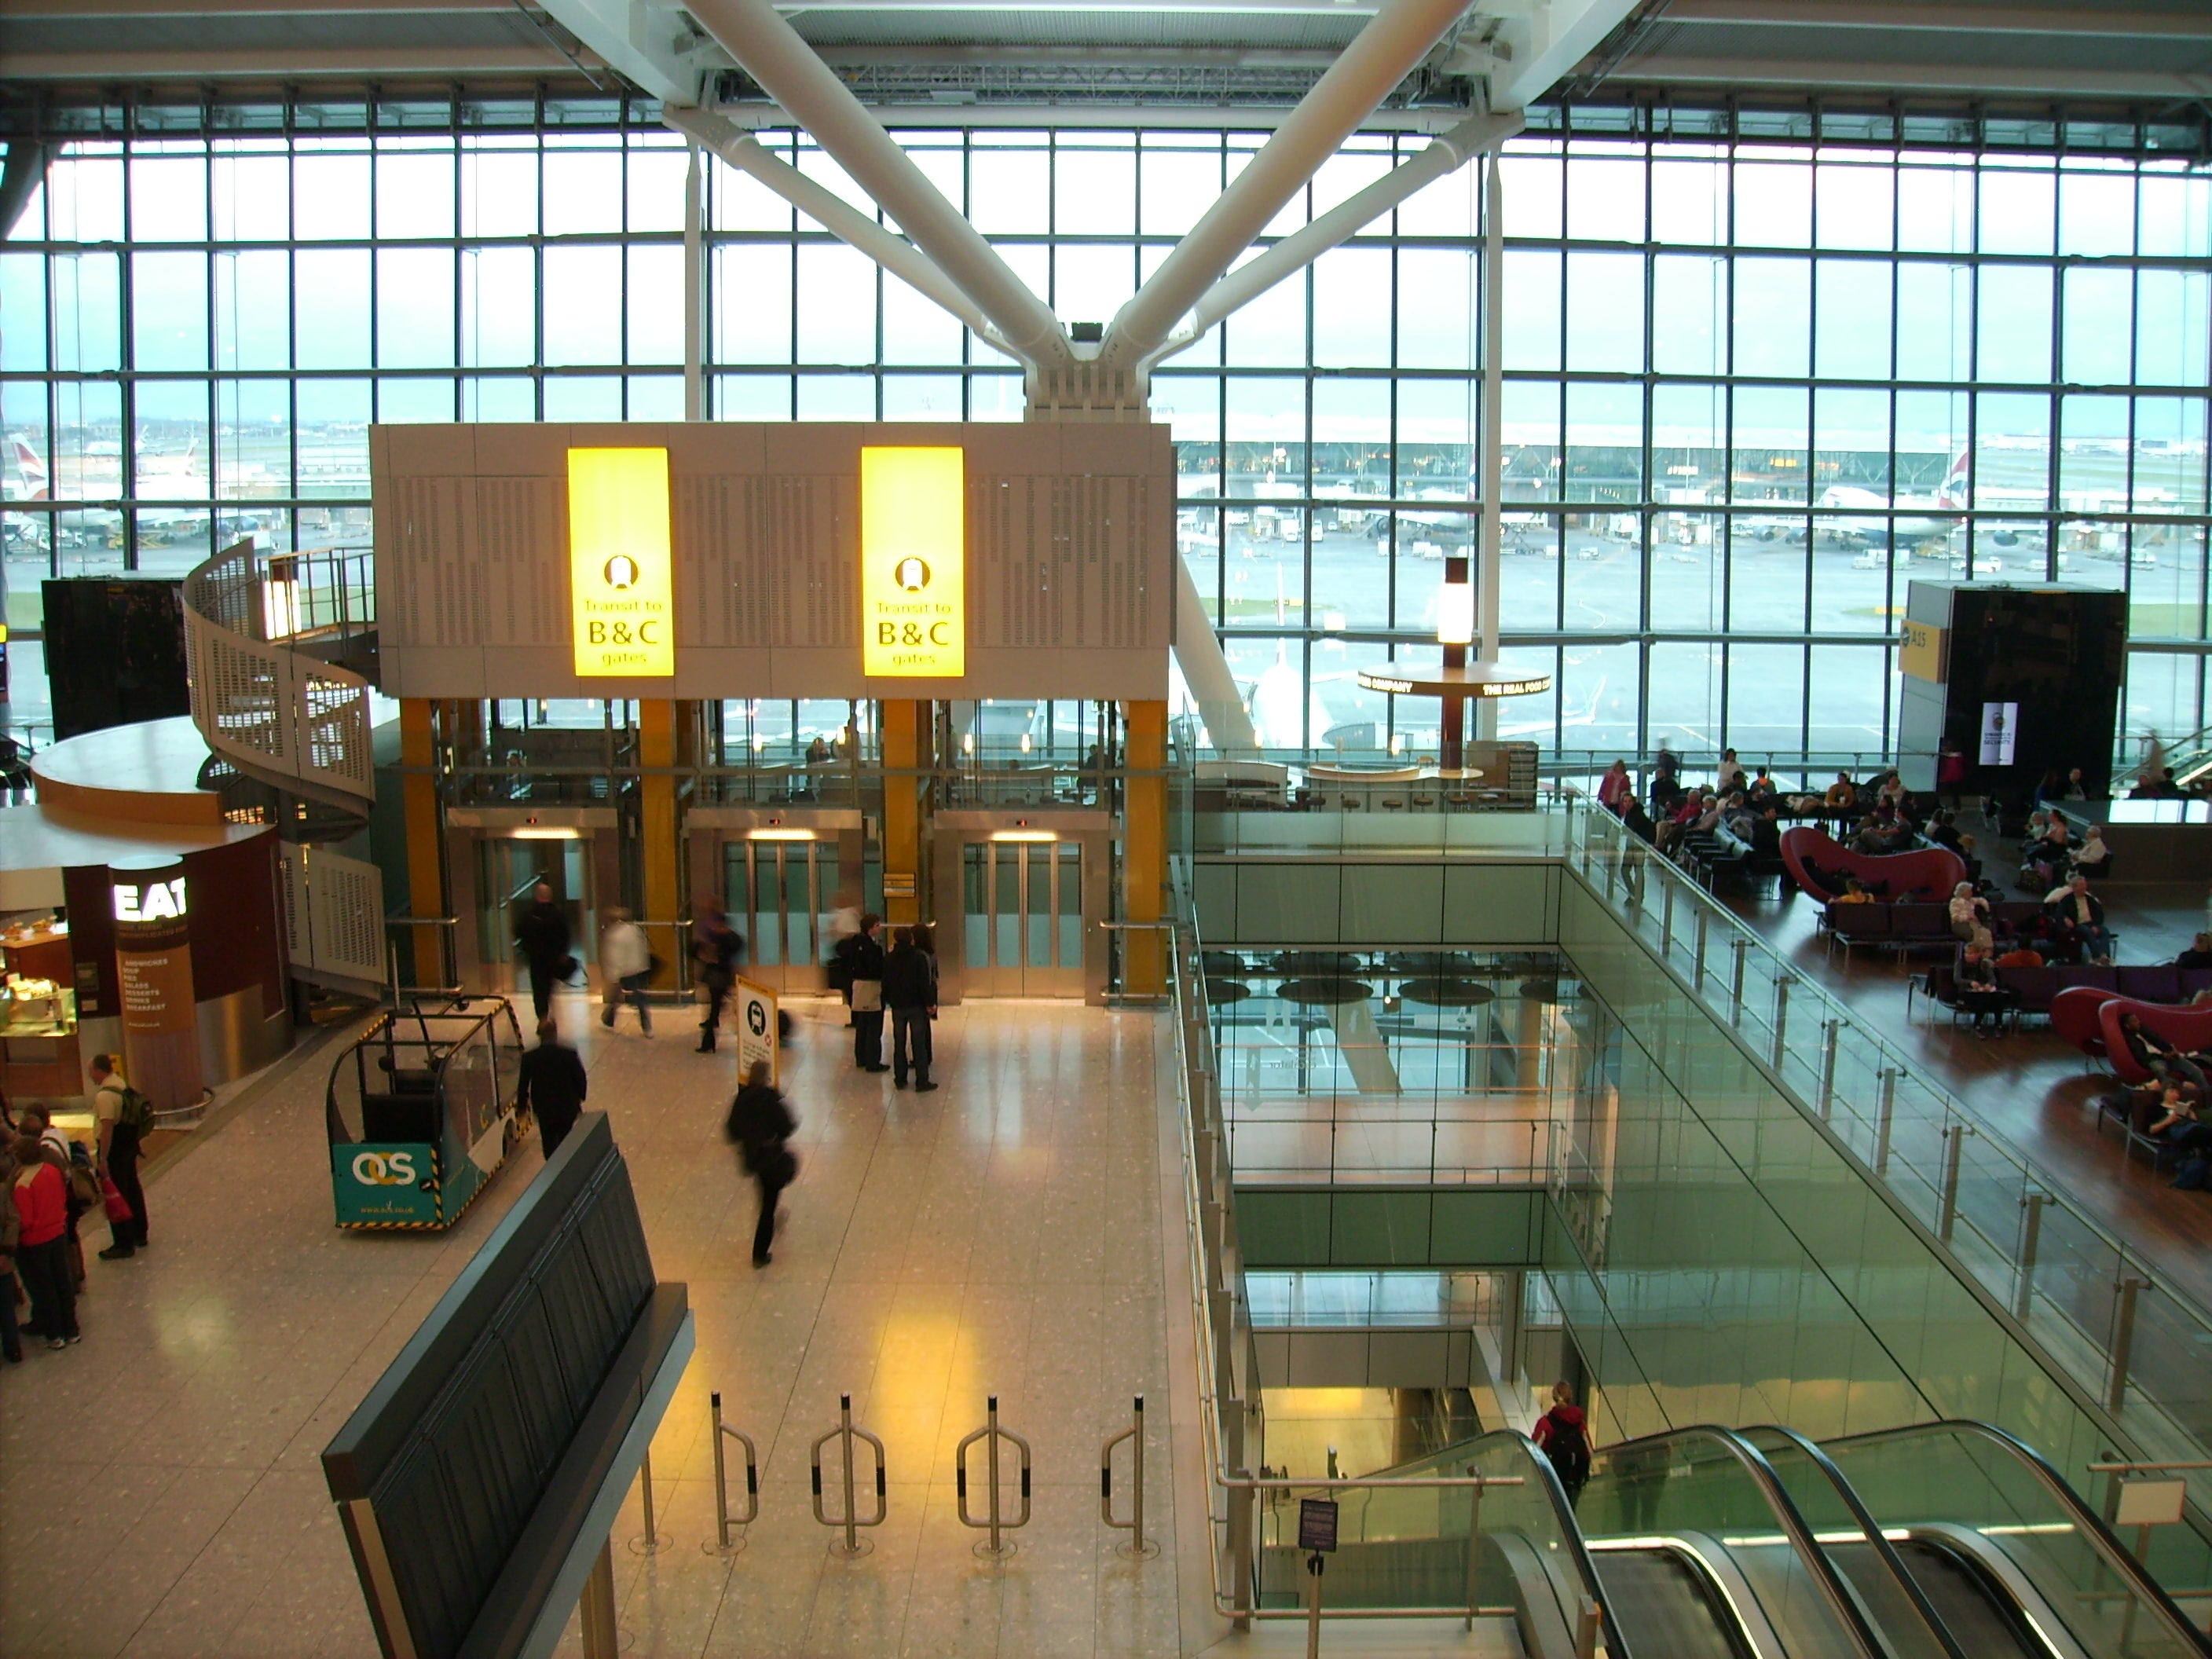 Turismo en Aeropuerto de Londres - Heathrow